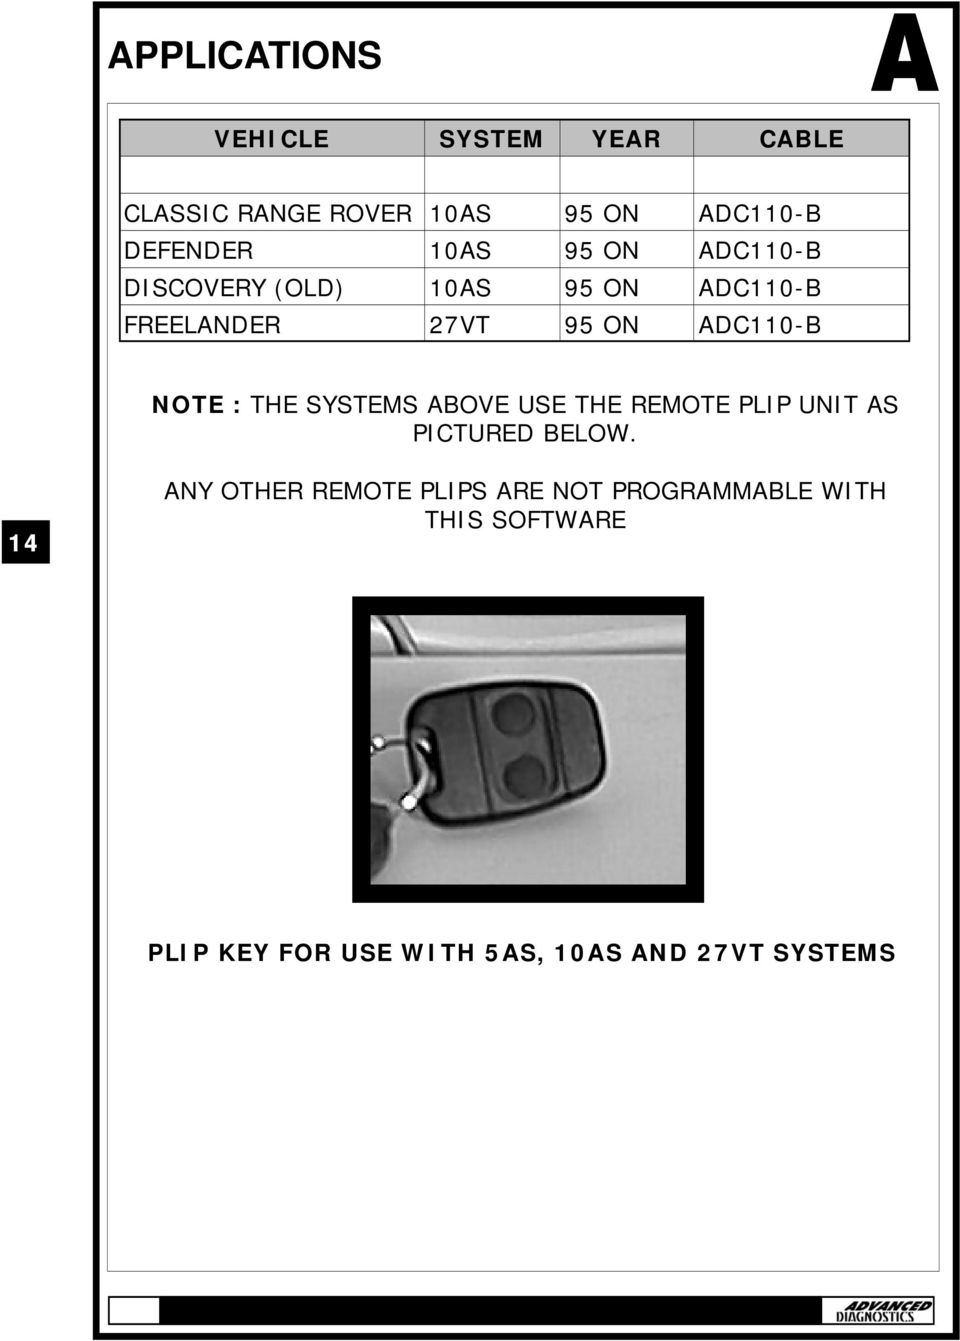 LAND ROVER MANUAL CONTENTS APPLICATIONS GENERAL OPERATION